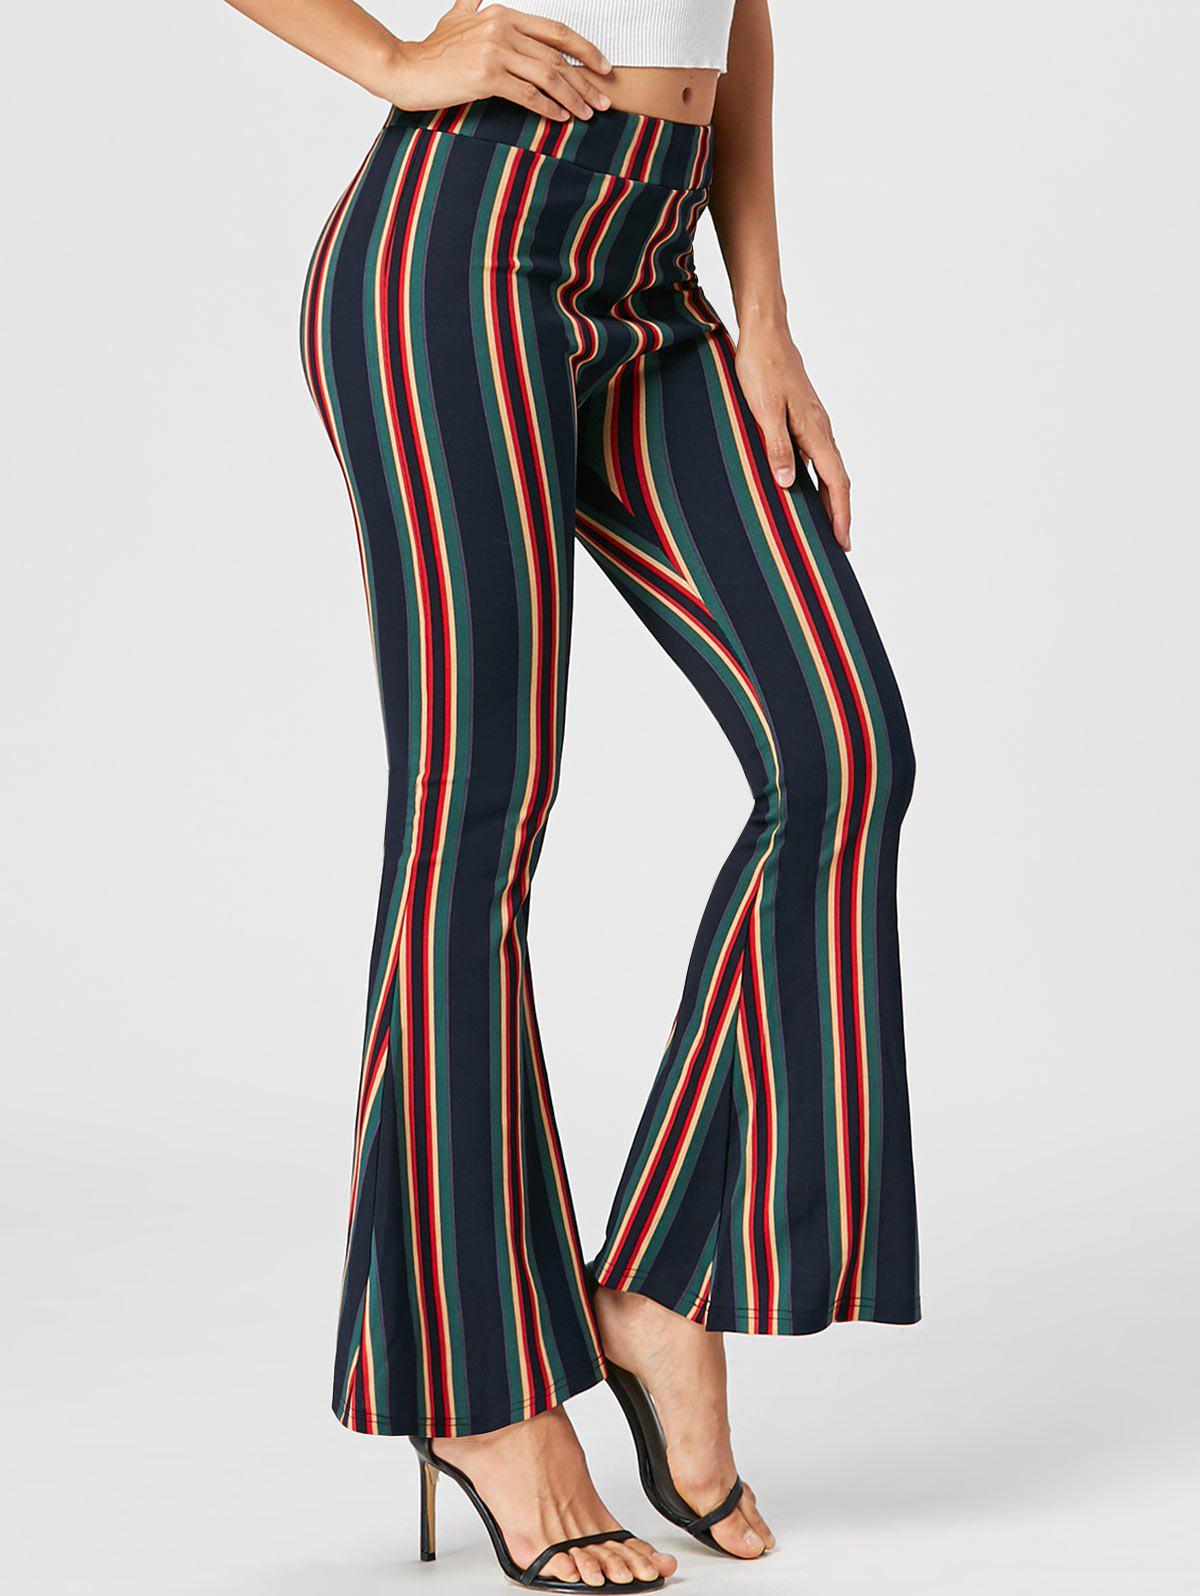 Vertical Striped Flare PantsWOMEN<br><br>Size: M; Color: COLORMIX; Style: Fashion; Length: Normal; Material: Polyester,Spandex; Fit Type: Regular; Waist Type: Mid; Closure Type: Elastic Waist; Pattern Type: Striped; Pant Style: Flare Pants; Weight: 0.3700kg; Package Contents: 1 x Pants;